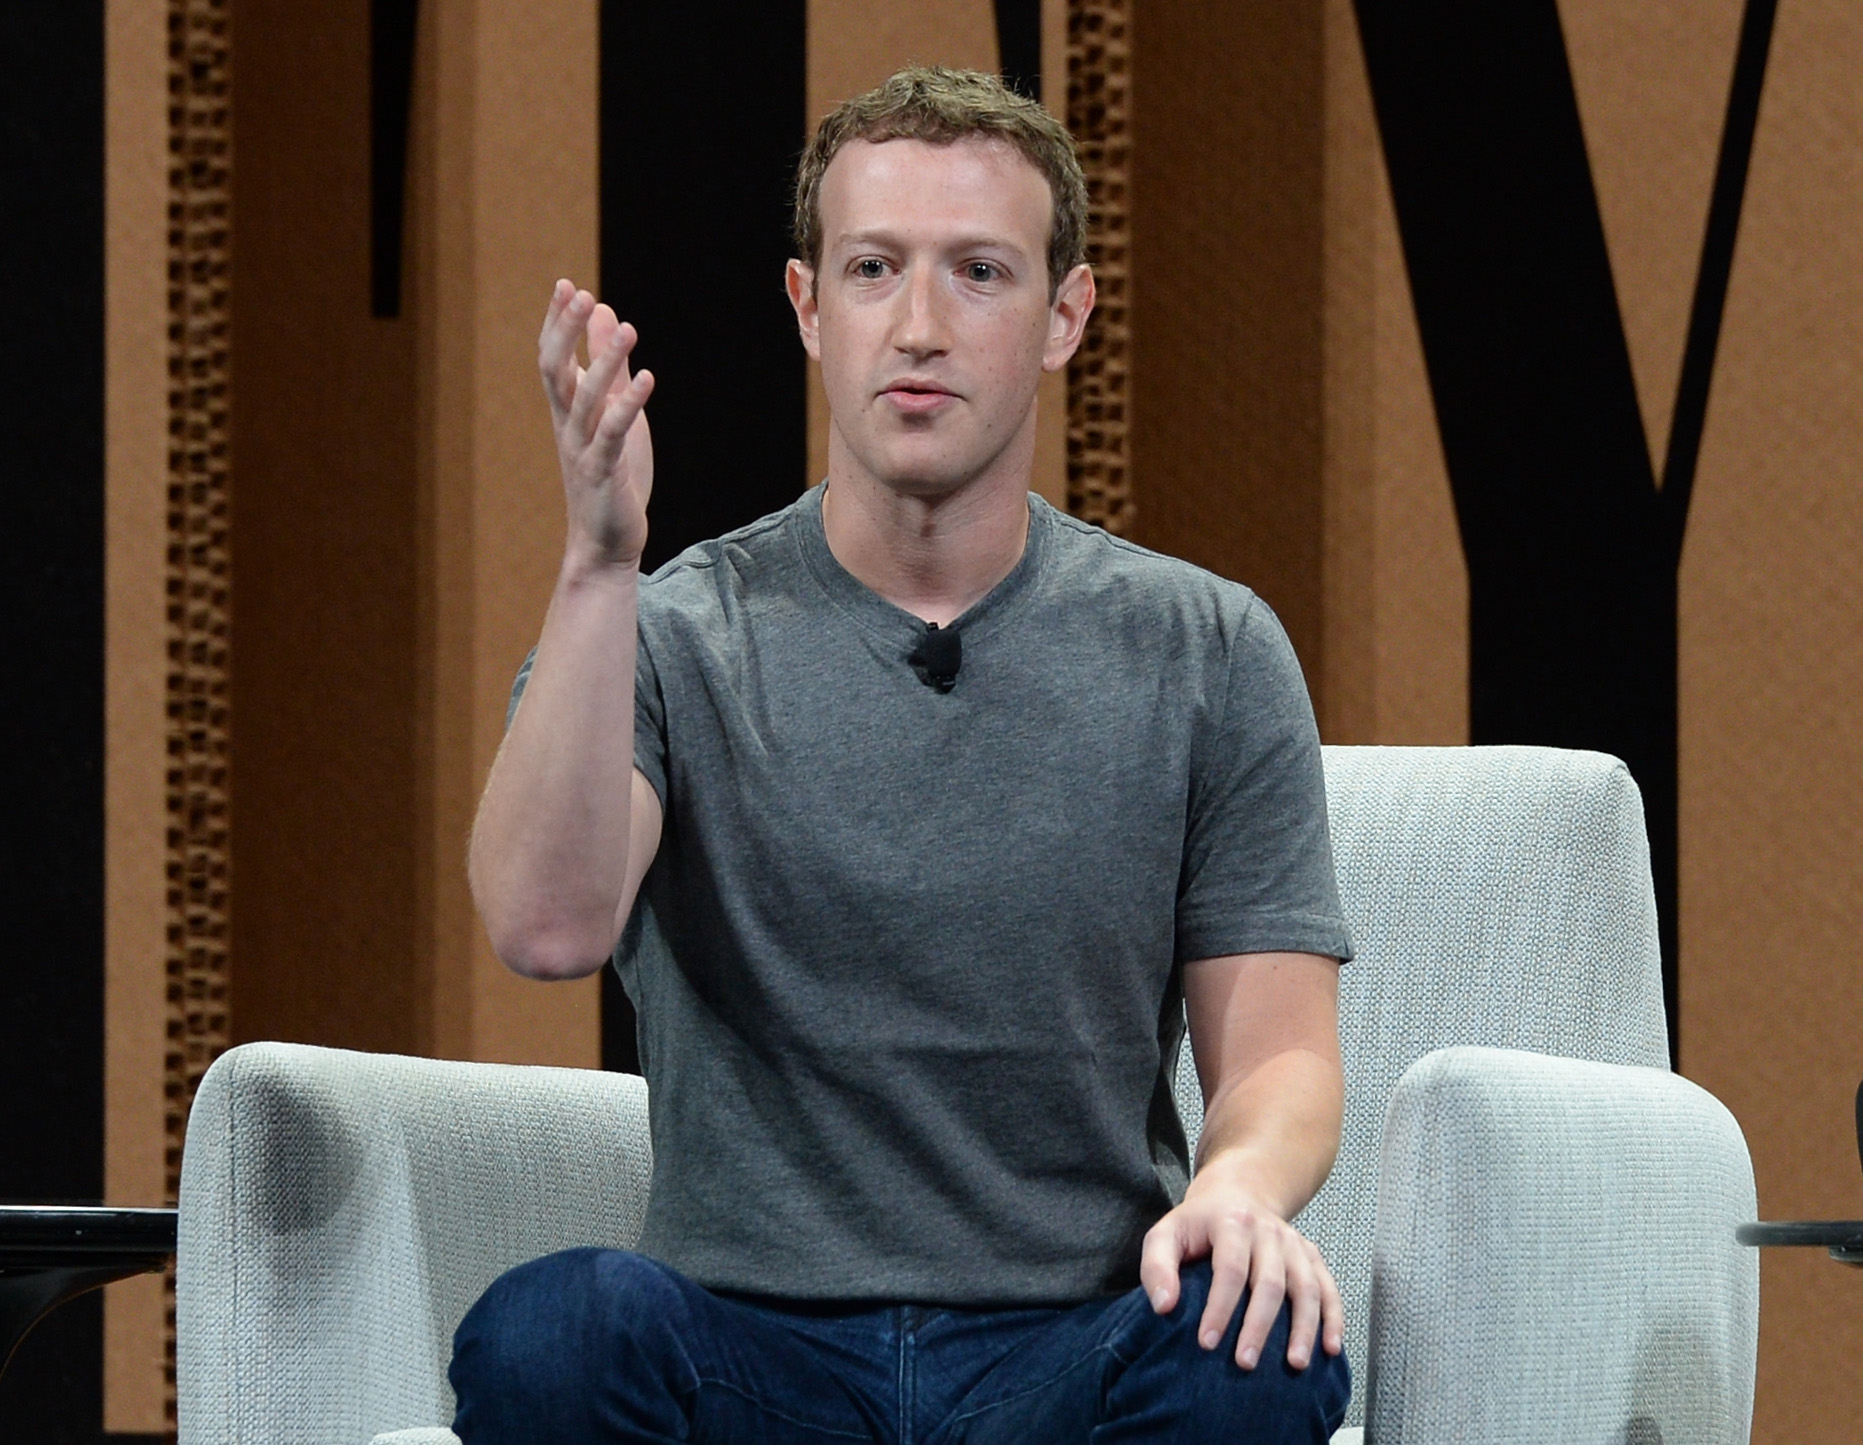 Mark Zuckerberg speaks onstage at the Vanity Fair New Establishment Summit at Yerba Buena Center for the Arts on October 7, 2015 in San Francisco, California.